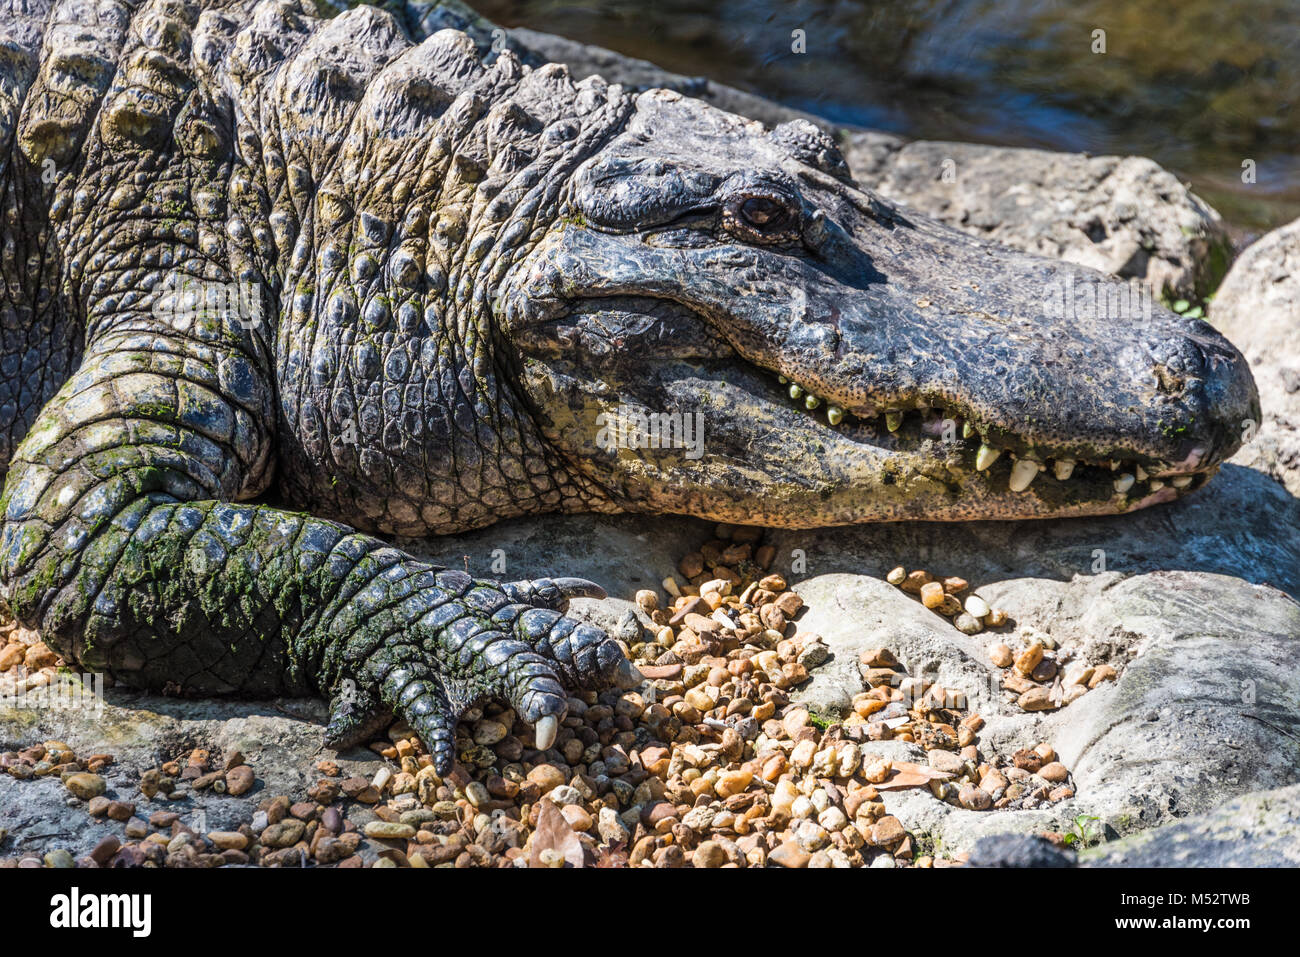 Large American alligator (Alligator mississippiensis) at Homosassa Springs Wildlife State Park on Florida's - Stock Image